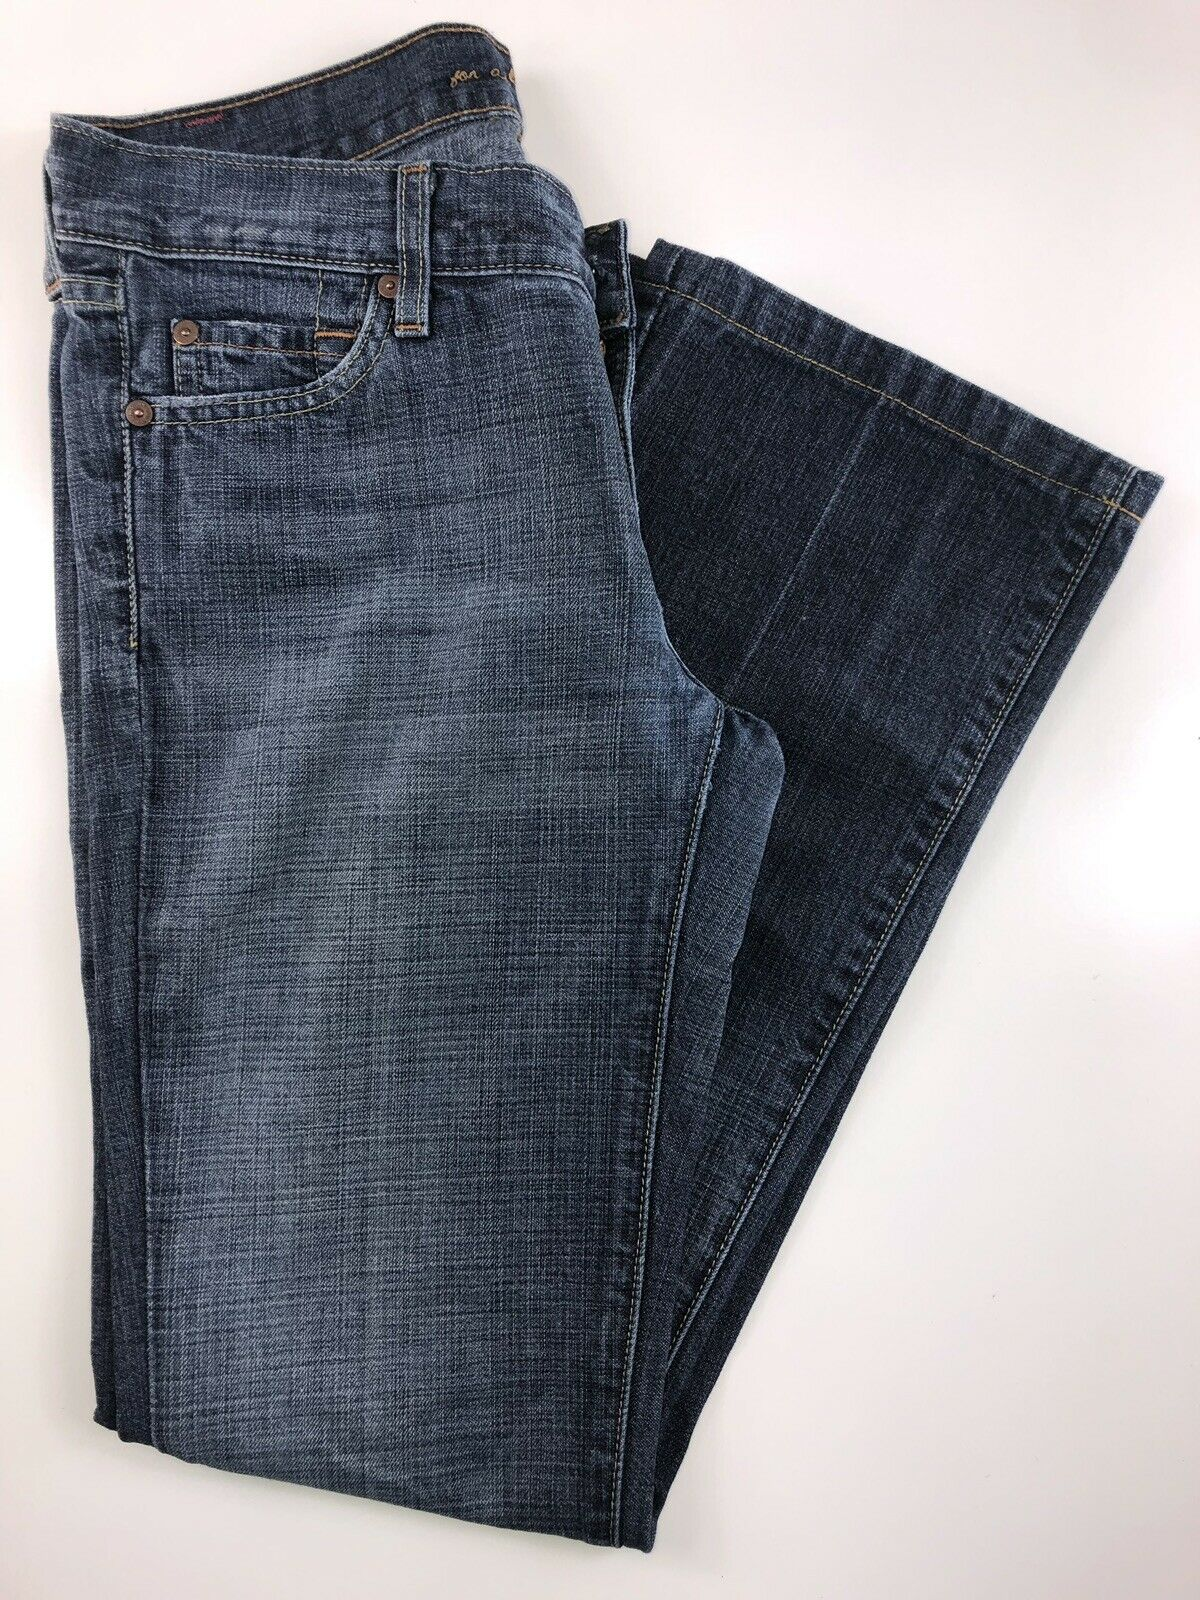 7 for all mankind Medium Wash BootCut Low Rise Jeans Size 28. 28x30x8x16